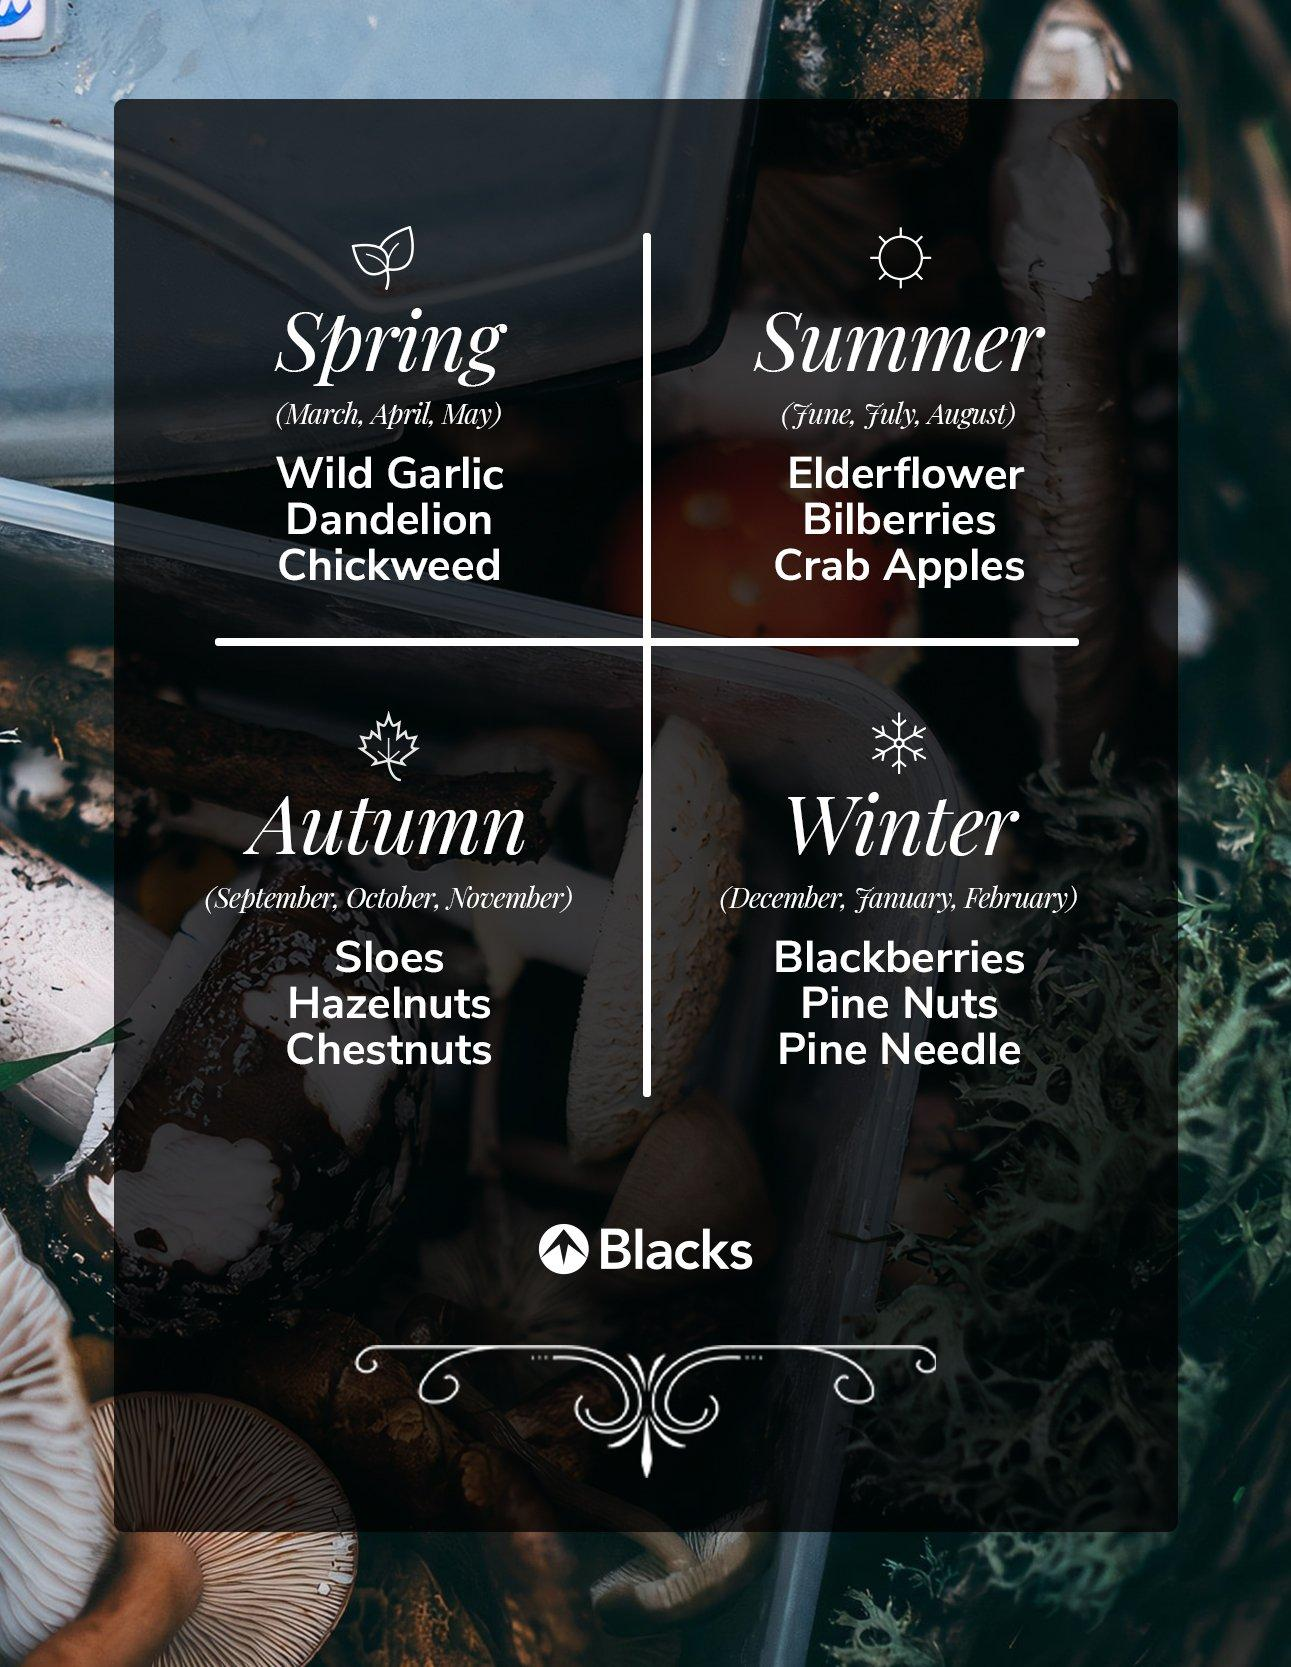 Foraging best picks for every season in the UK